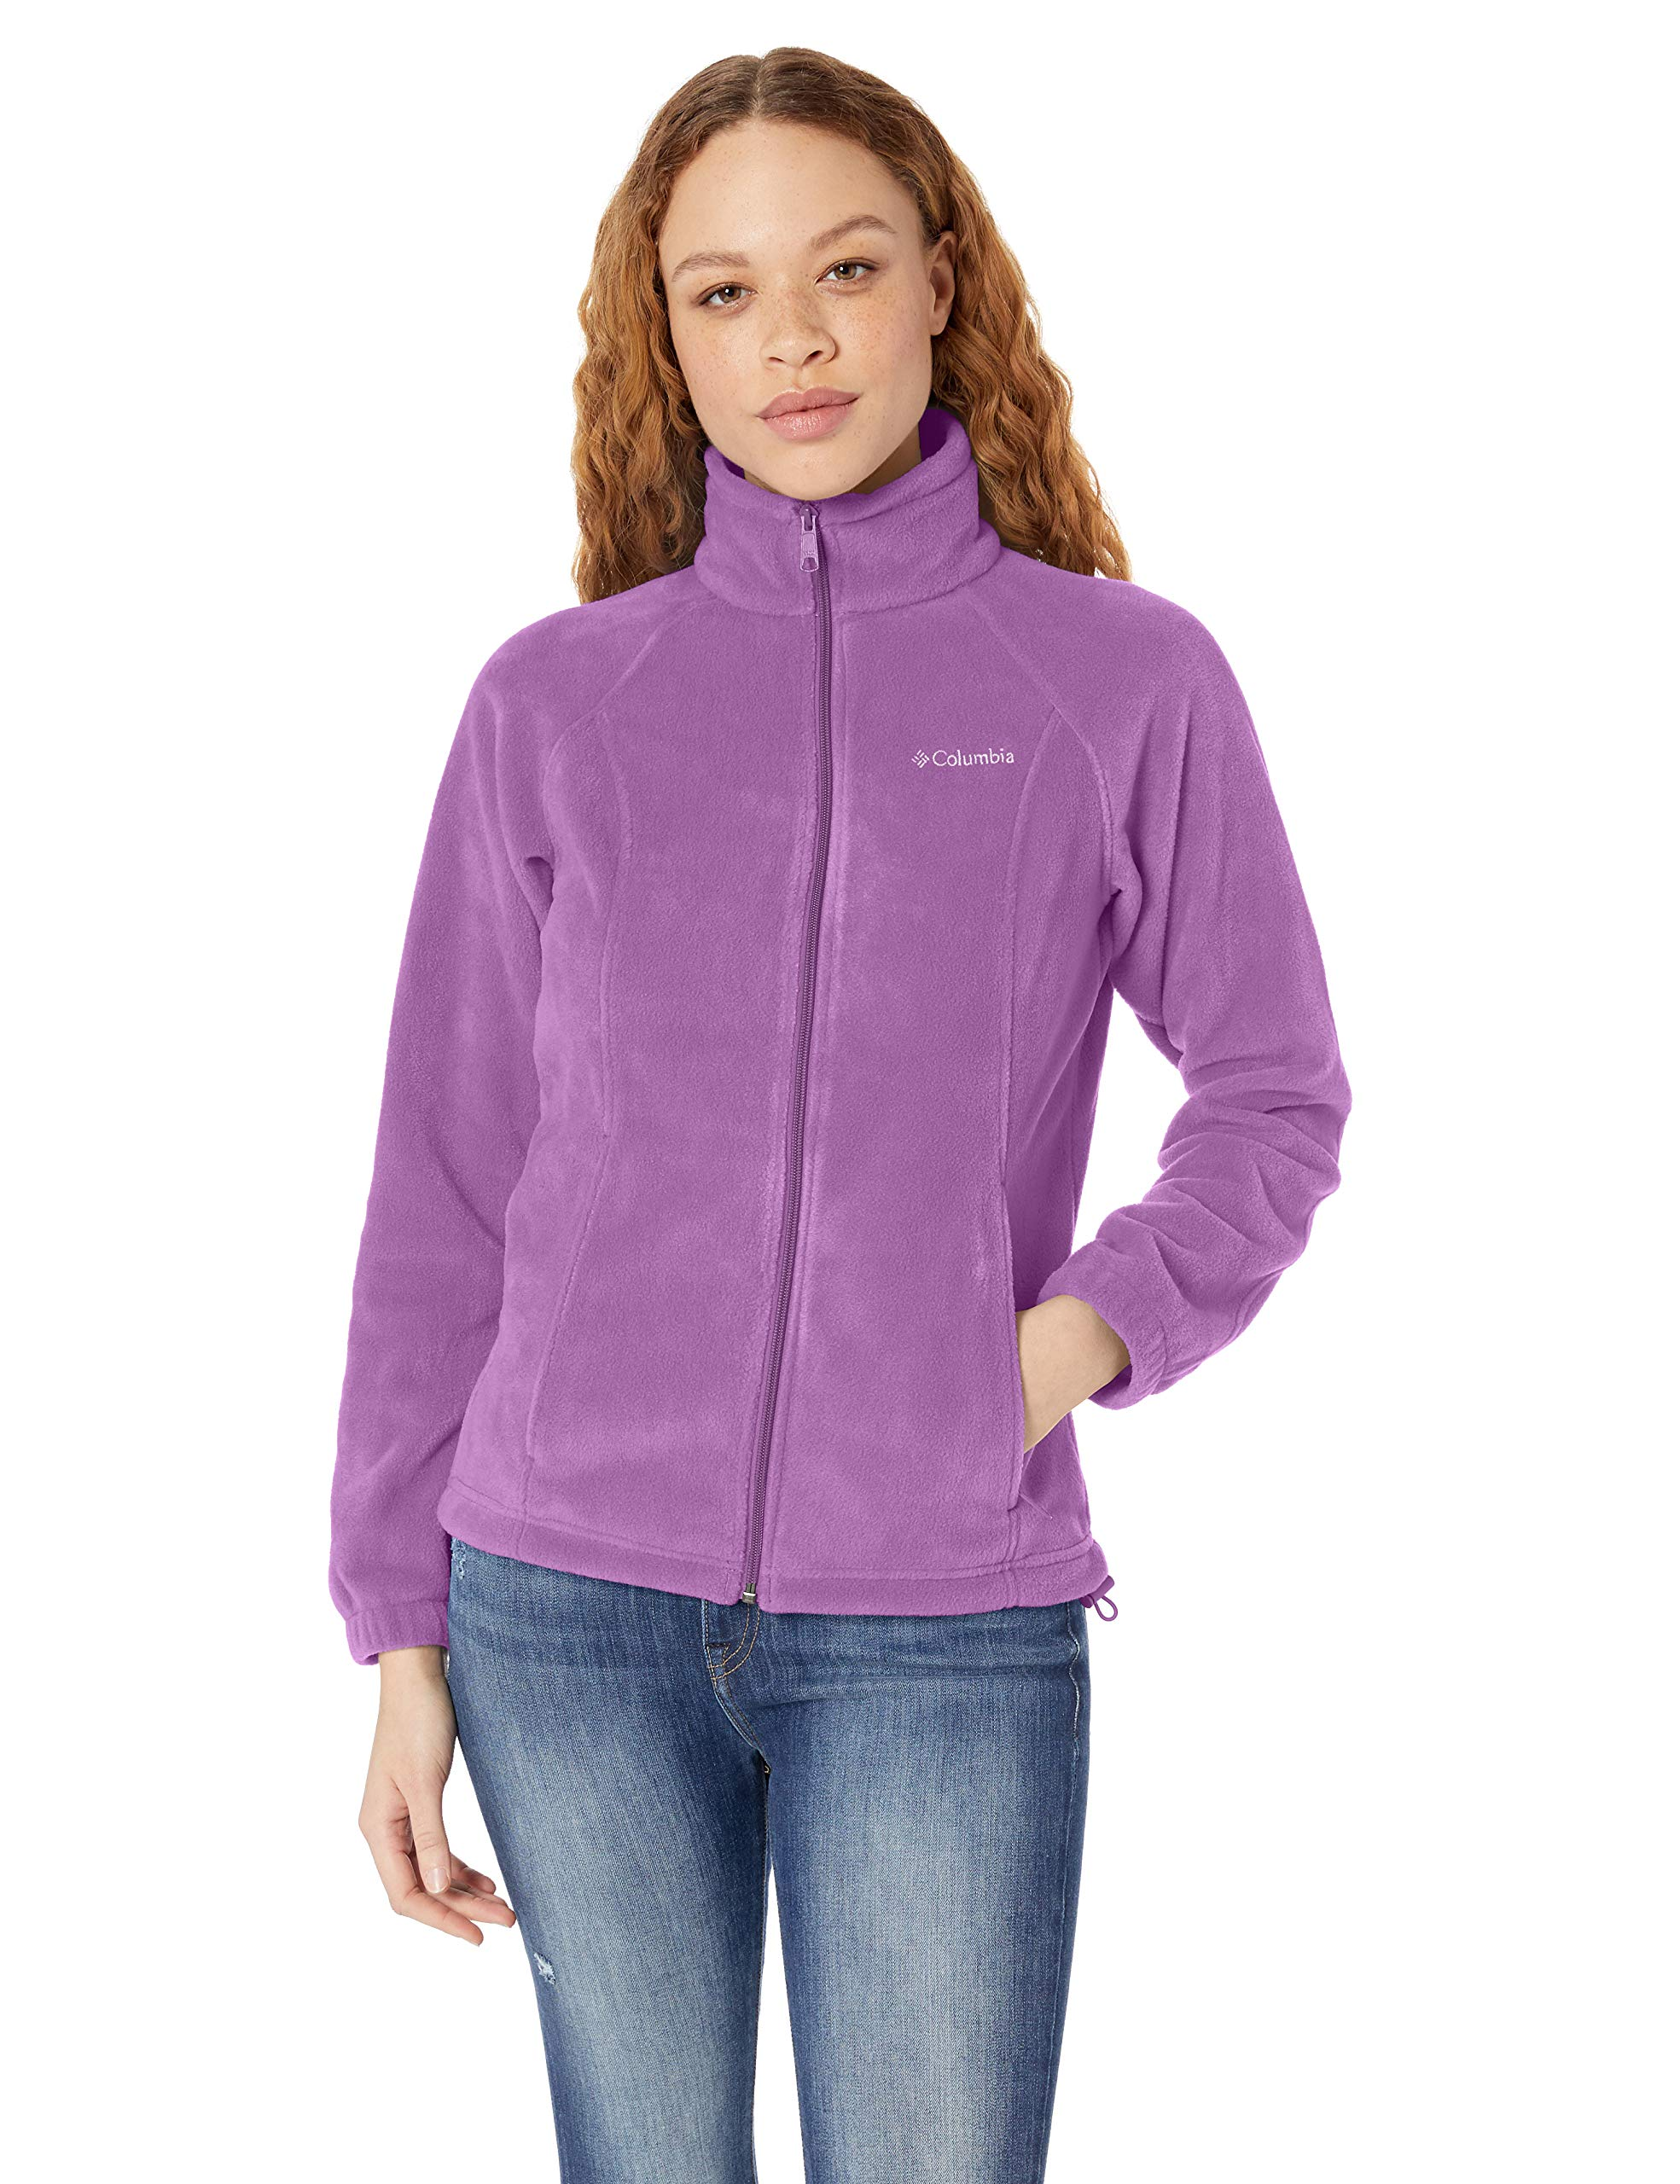 Columbia Women's Benton Springs Full Zip Jacket, Soft Fleece with Classic Fit, Crown Jewel, Petite Small by Columbia